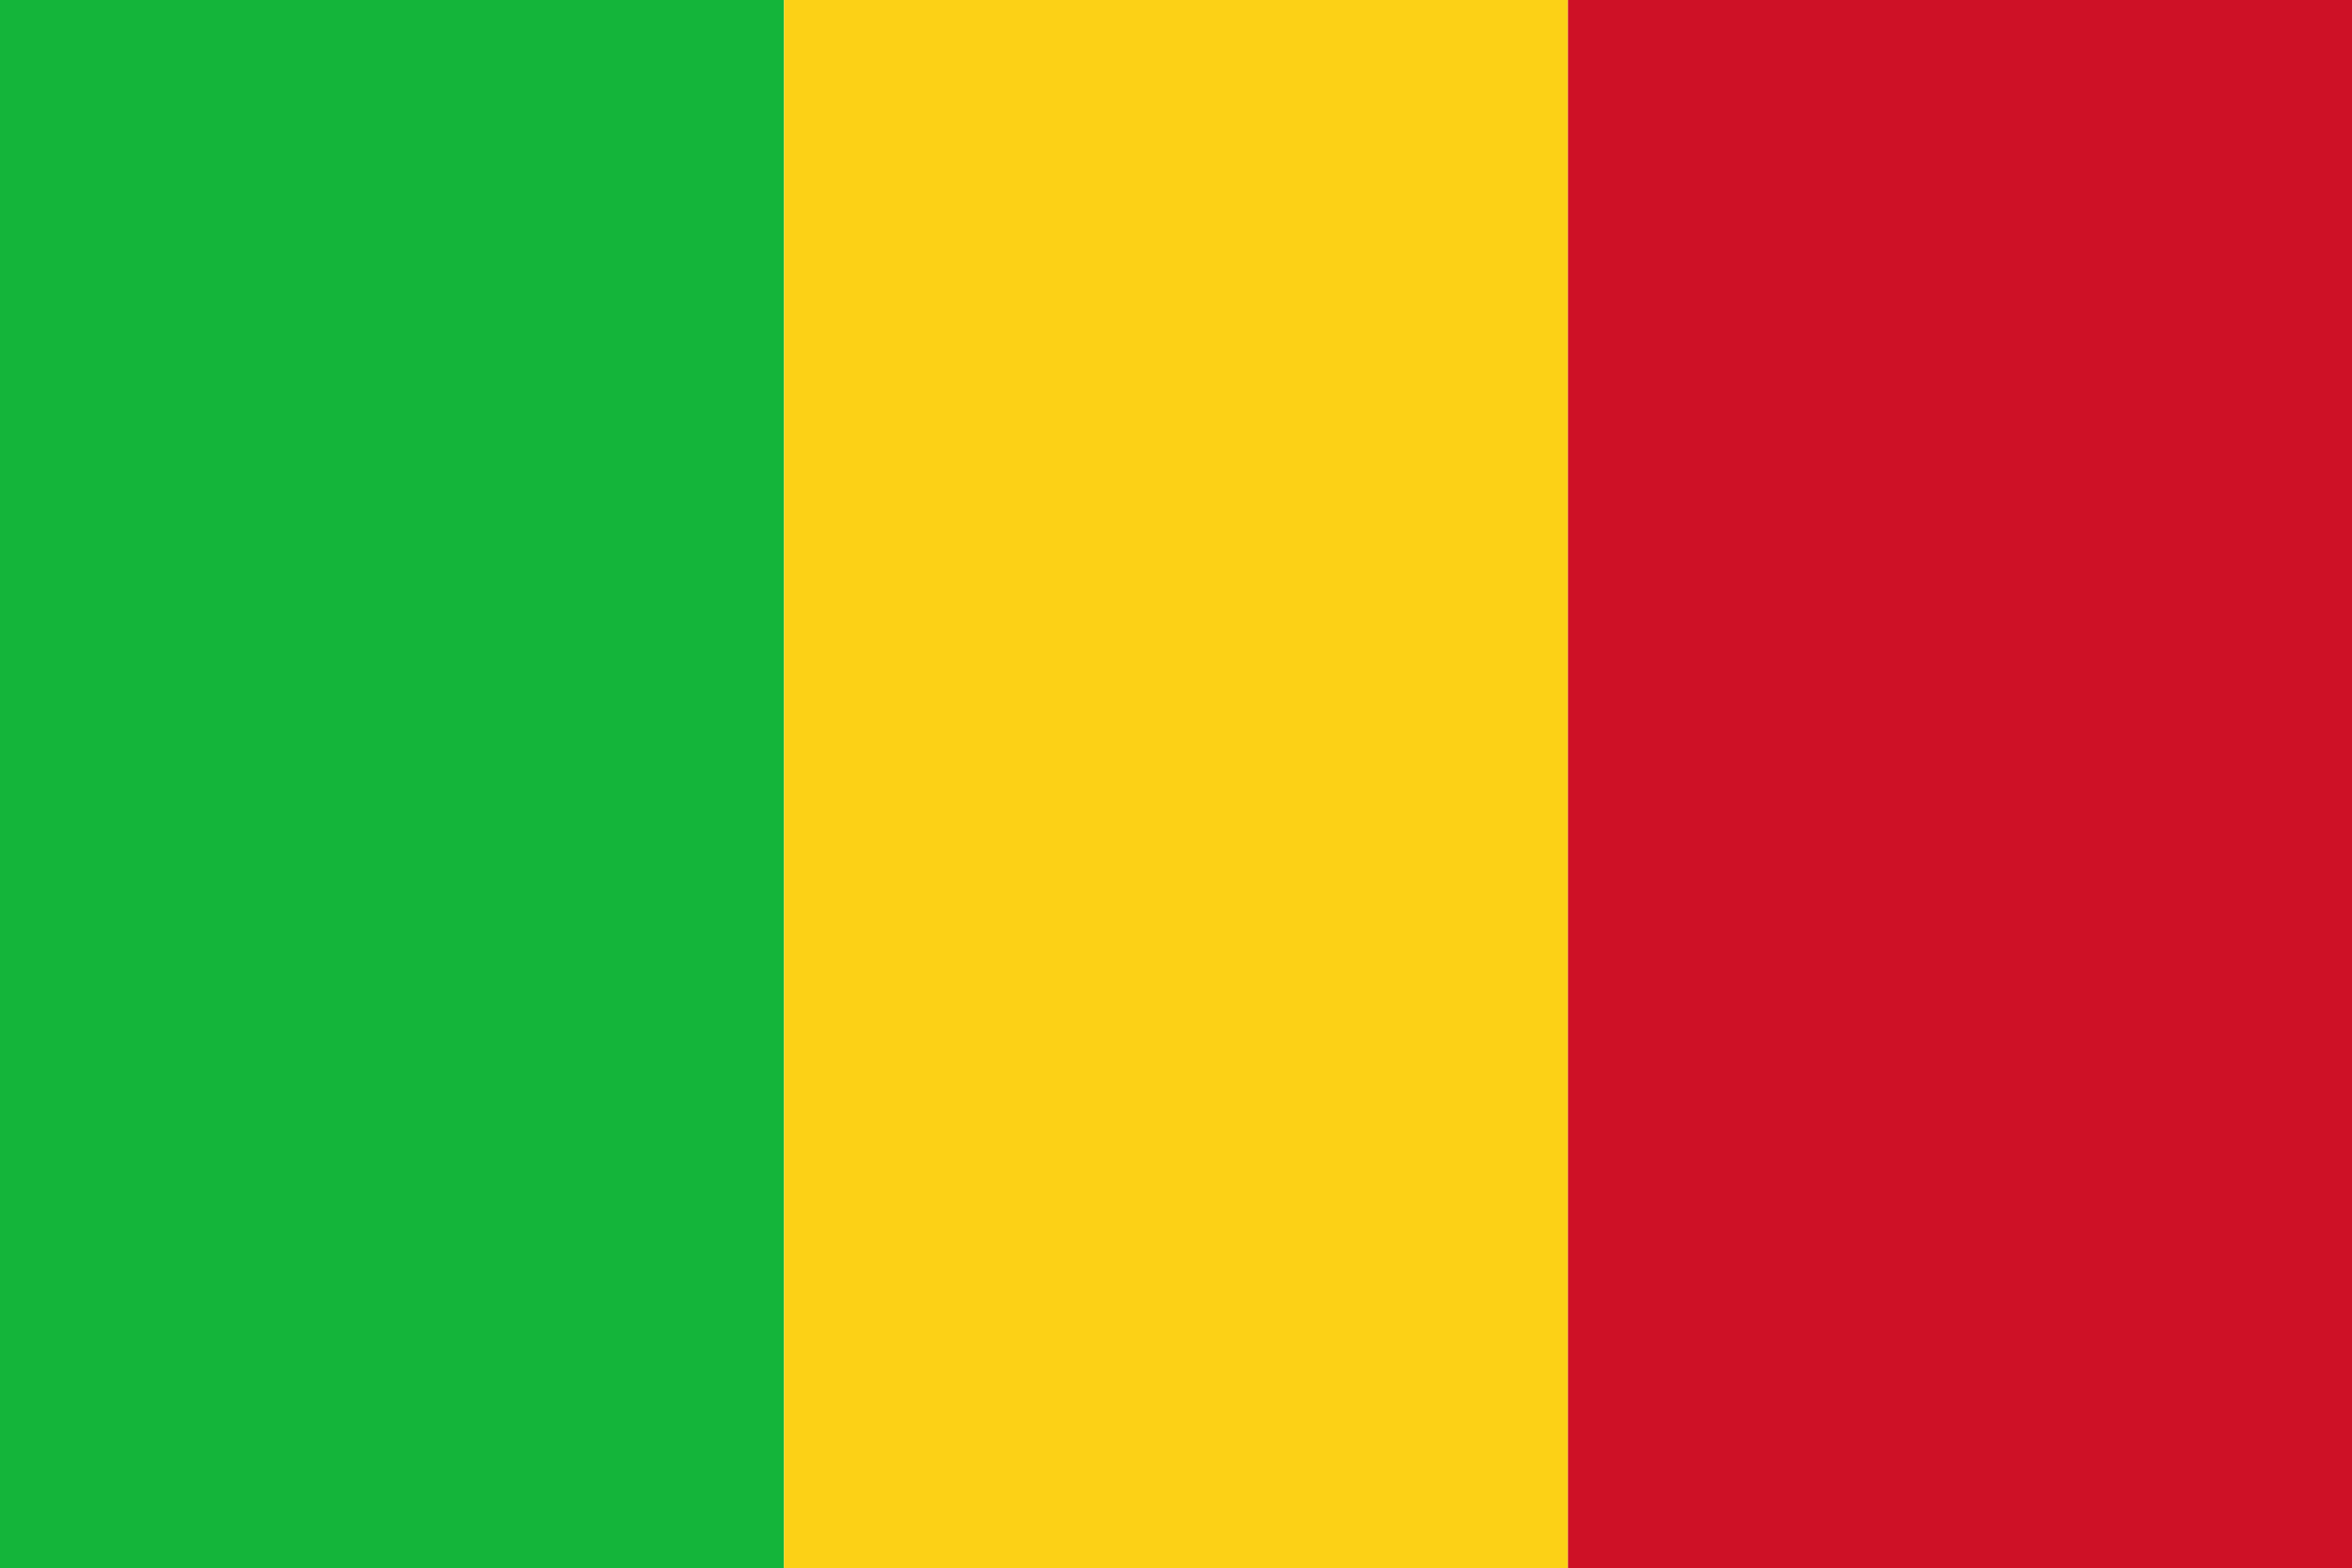 Mali's Flag EnchantedLearning.com